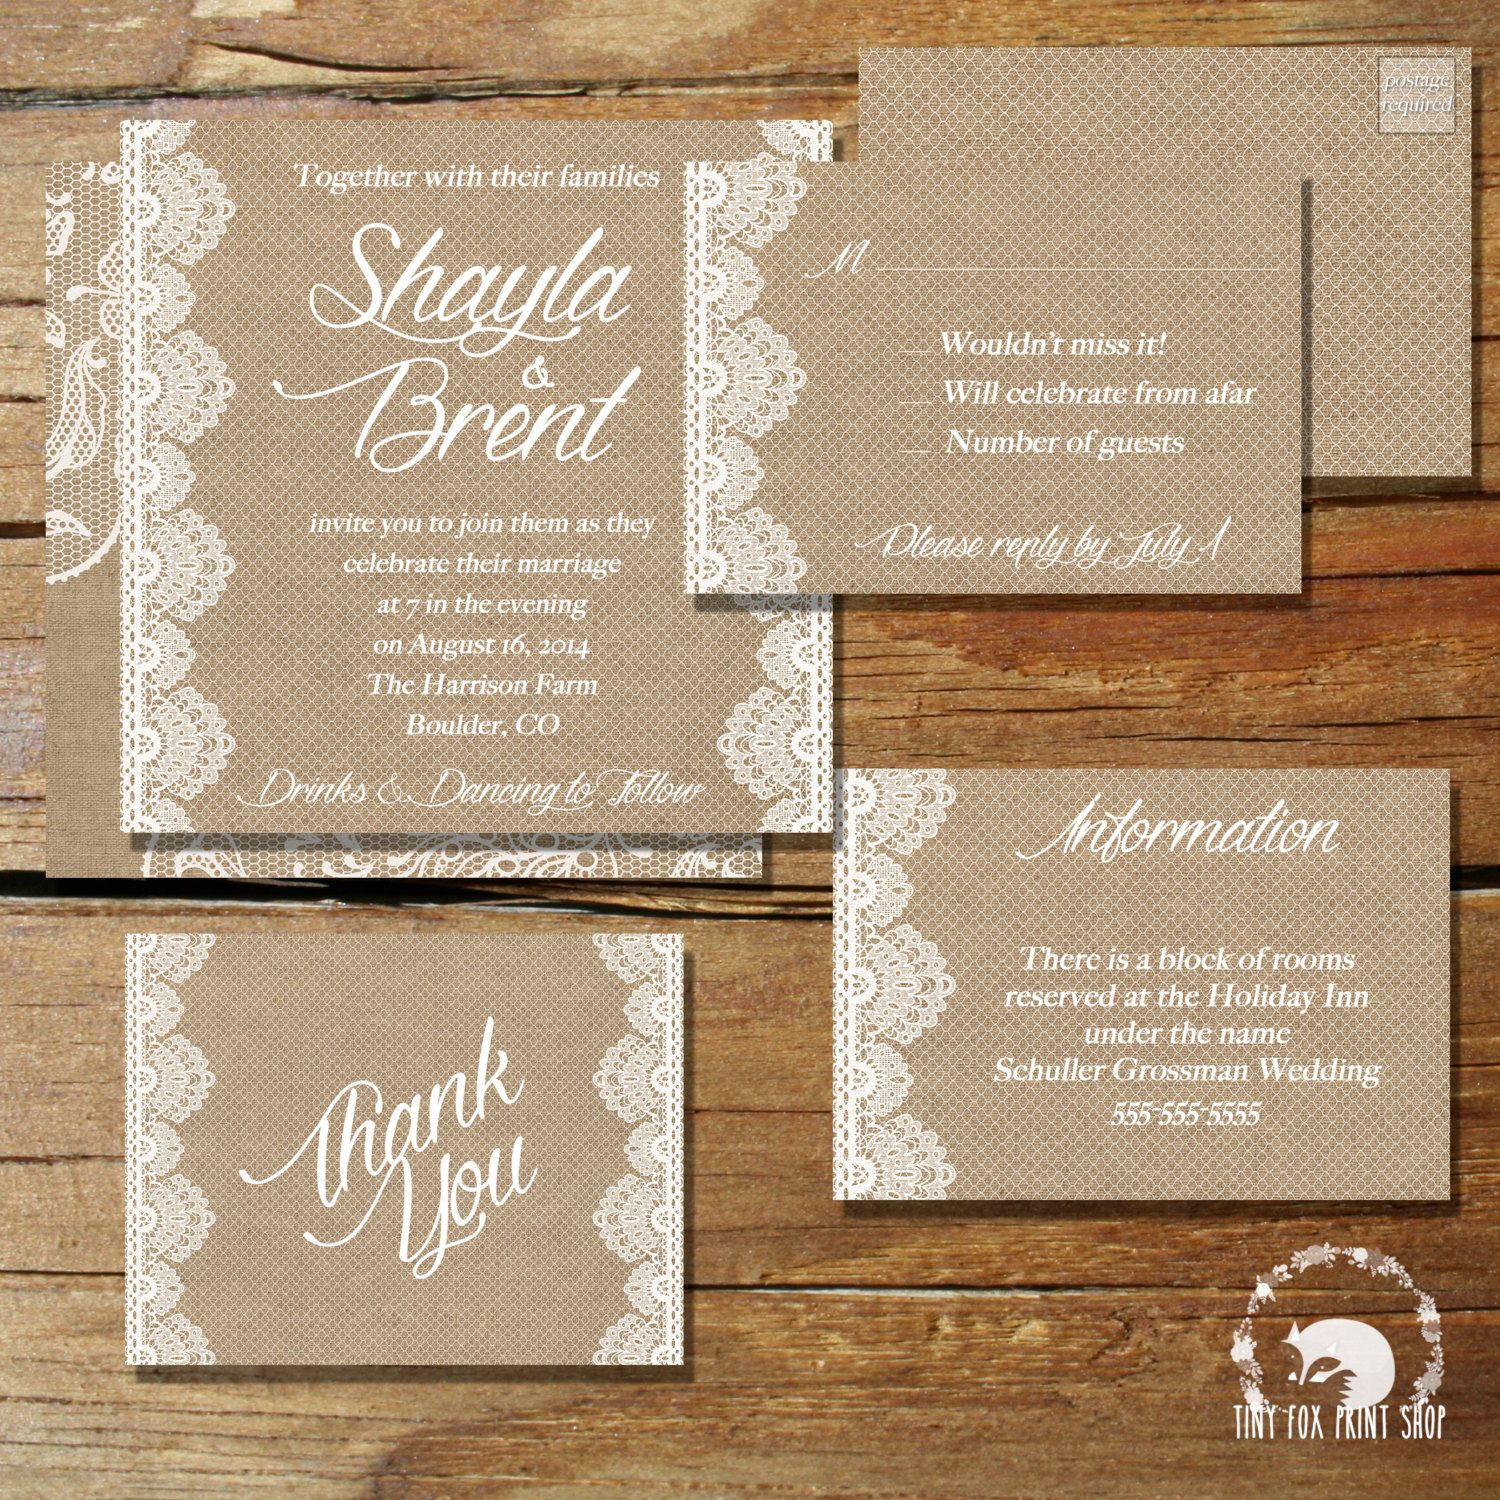 Printable Burlap Lace Wedding Invitation Rsvp By Tinyfoxprintshop